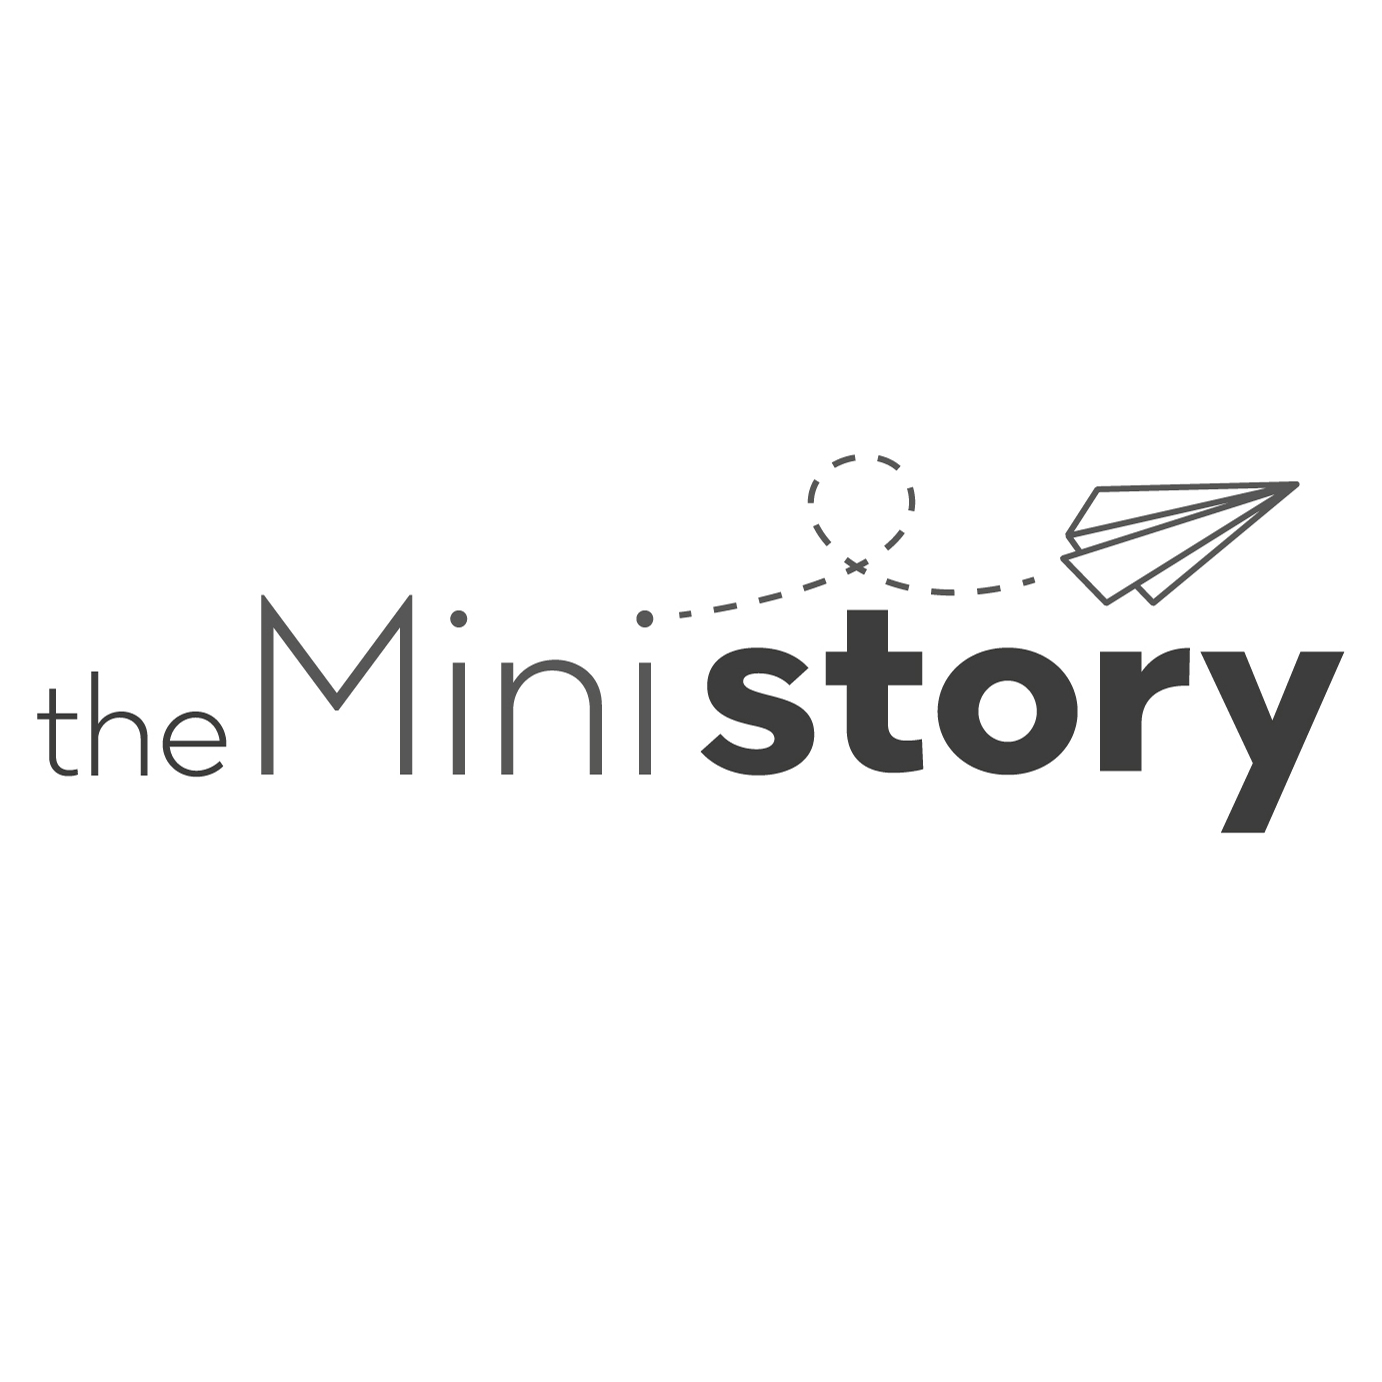 the Mini Story - playfully different